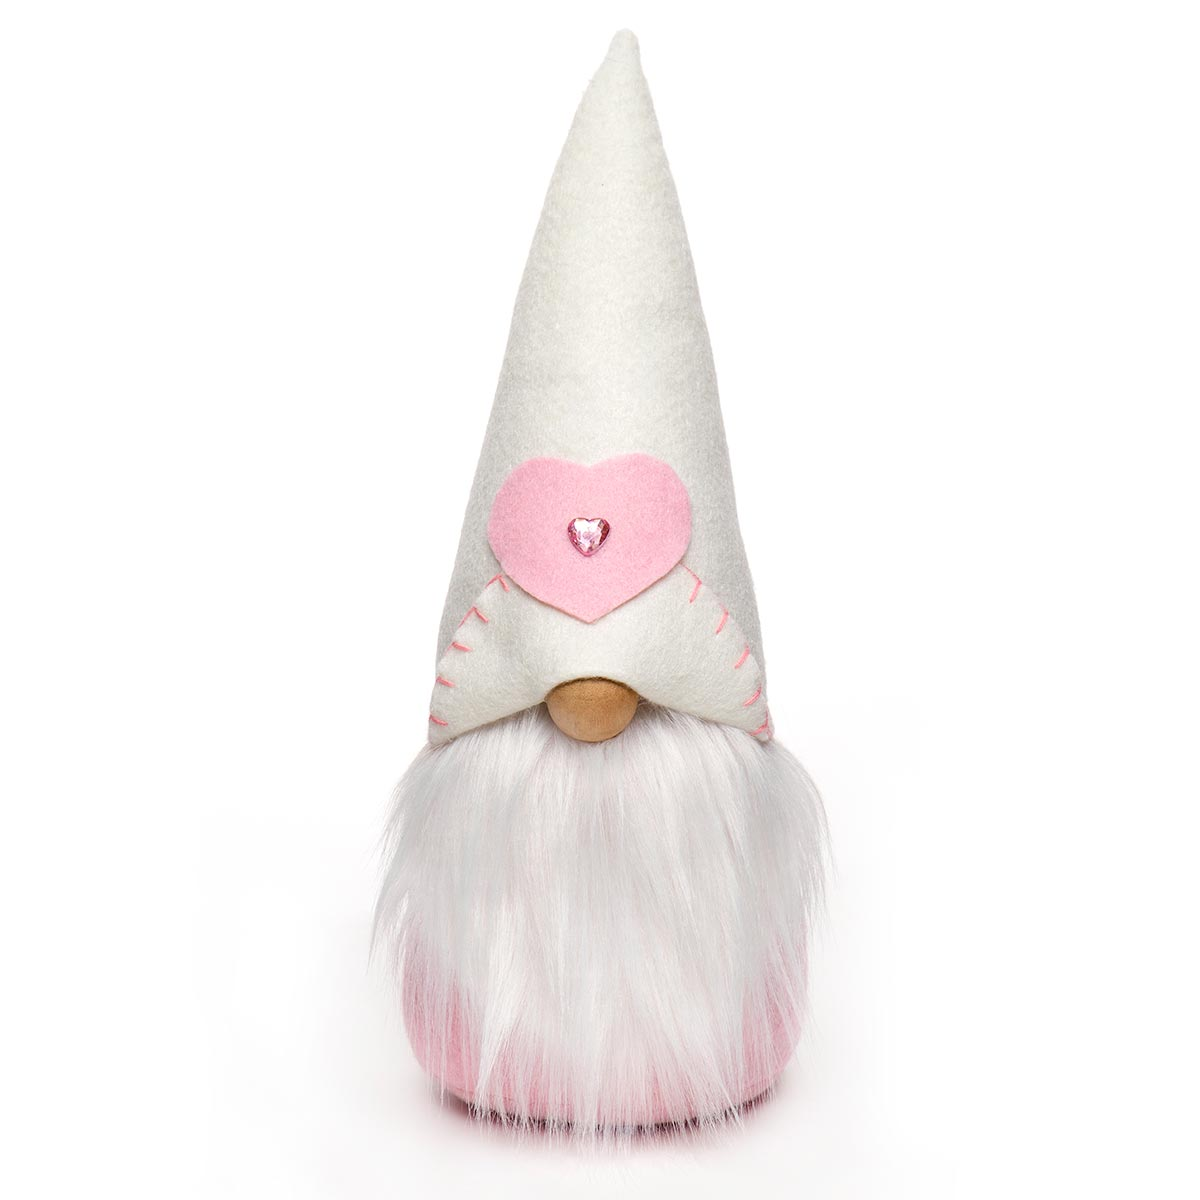 AMORE JEWEL GNOME WITH WHITE STITCHED HAT